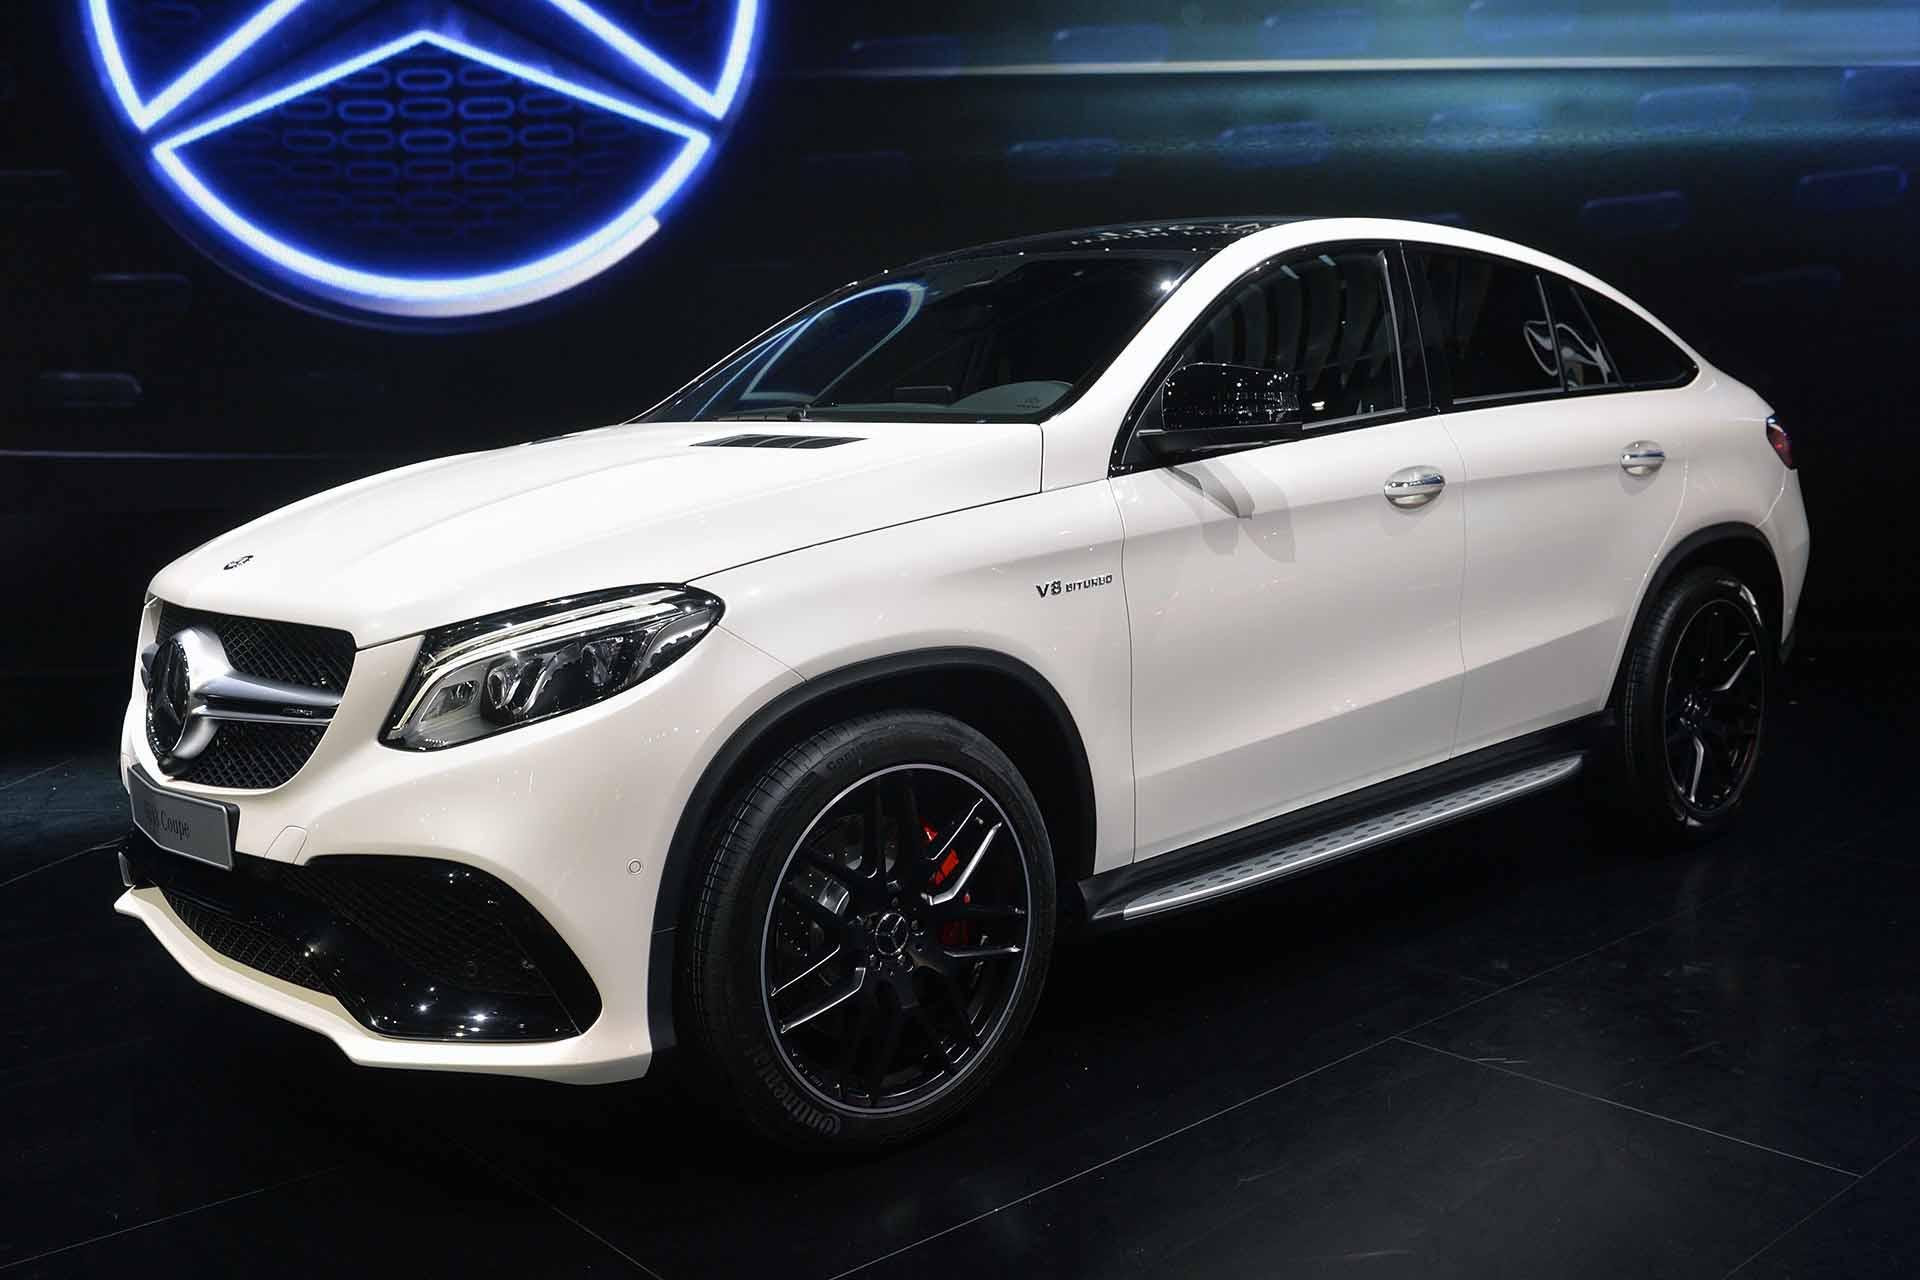 sal n de detroit 2015 mercedes benz gle 63 amg coup 2016. Black Bedroom Furniture Sets. Home Design Ideas